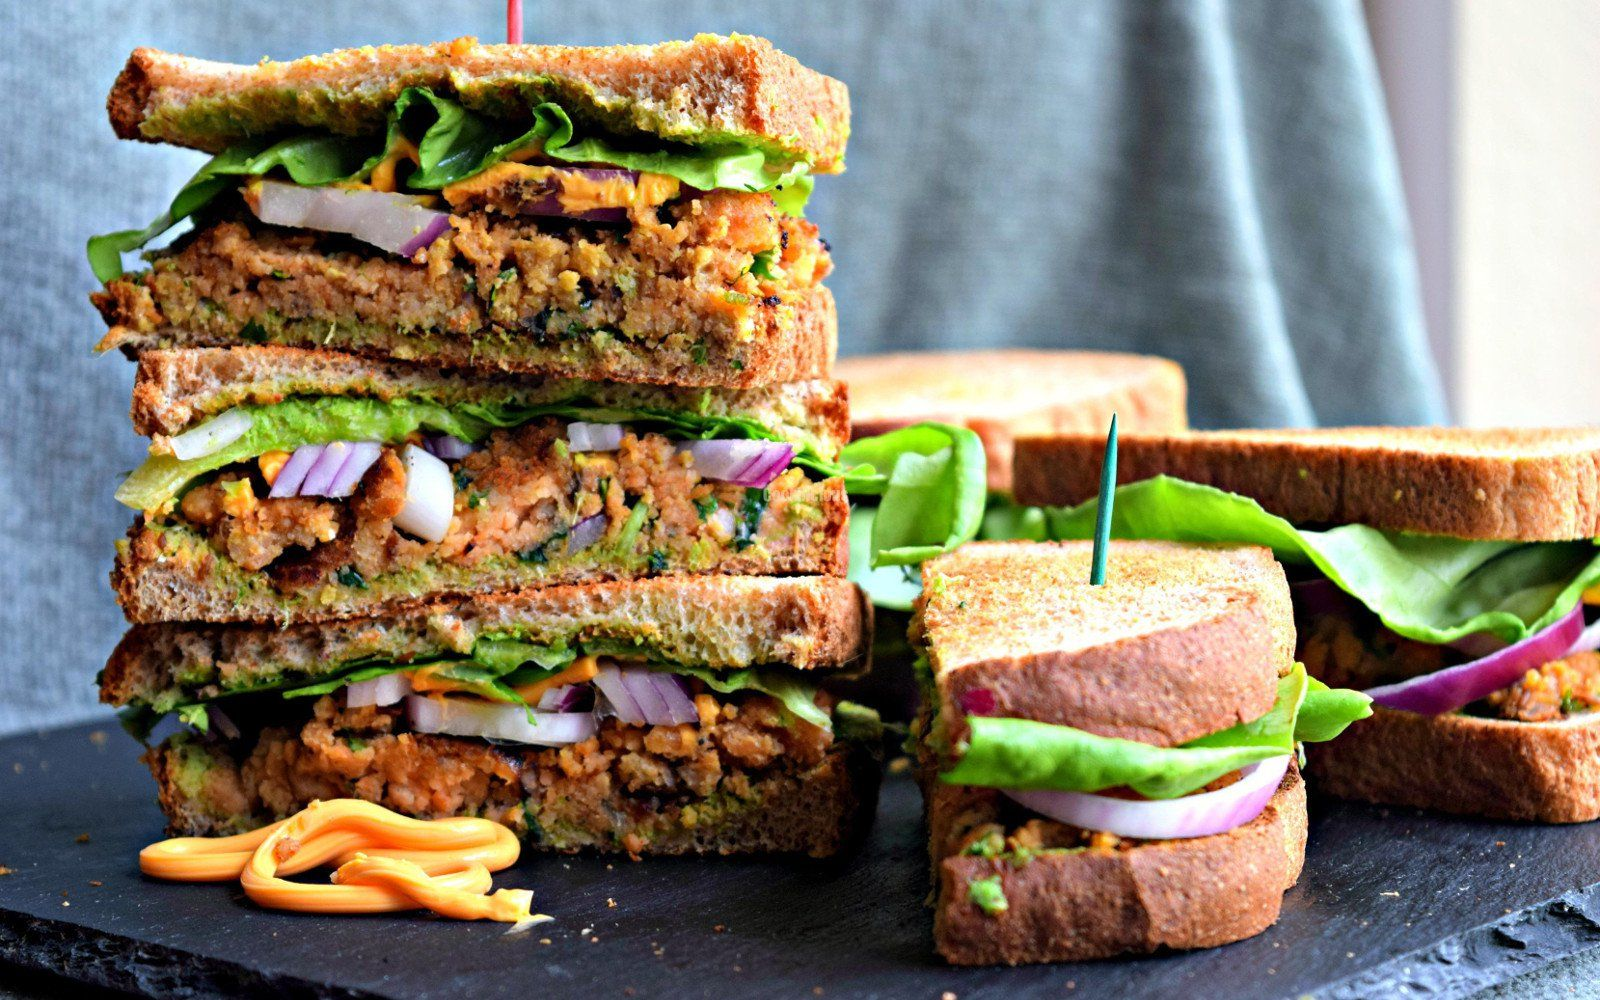 Indian-Spiced Red Lentil Patty Sandwich [Vegan]